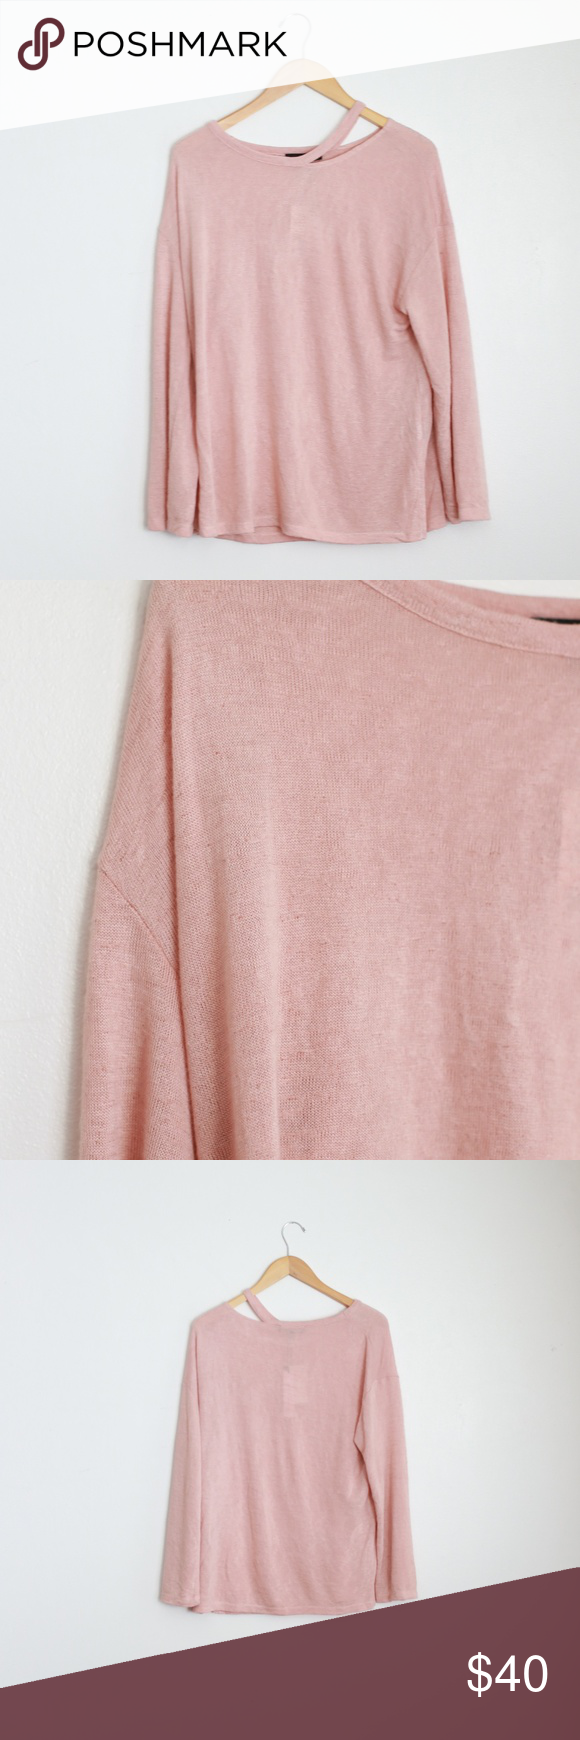 e0ed8ae88 Cute long sleeve sweater with cut out neck by SANCTUARY! Dusty Mauve/blush  pink color Long sleeve Split sides Cut out neck Subtle knit pattern  Straight ...